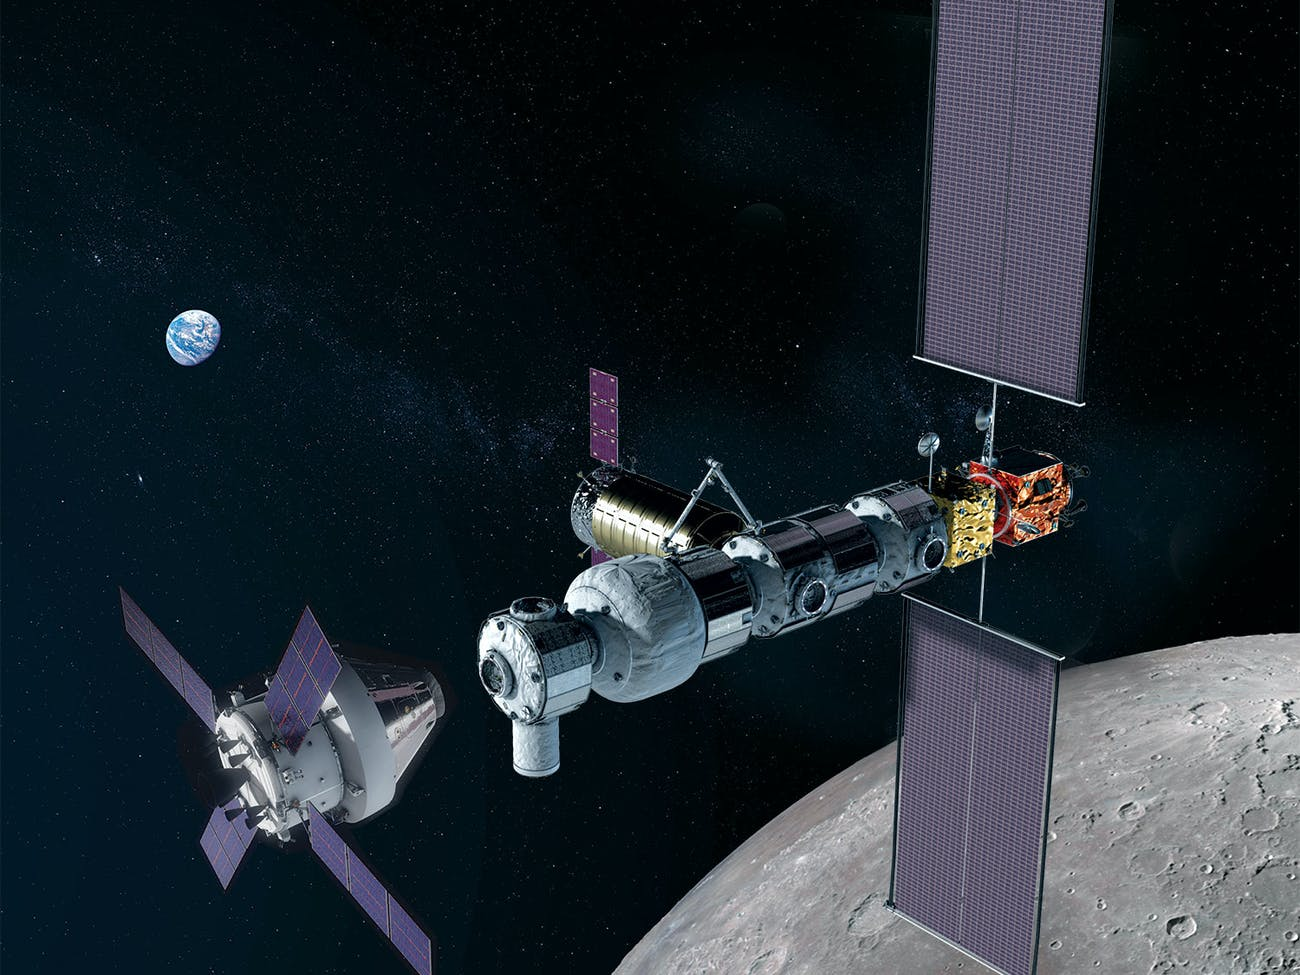 A NASA artist's rendering of the proposed Lunar Gateway that would orbit the moon and be the last stopping point before sending human astronauts to Mars.